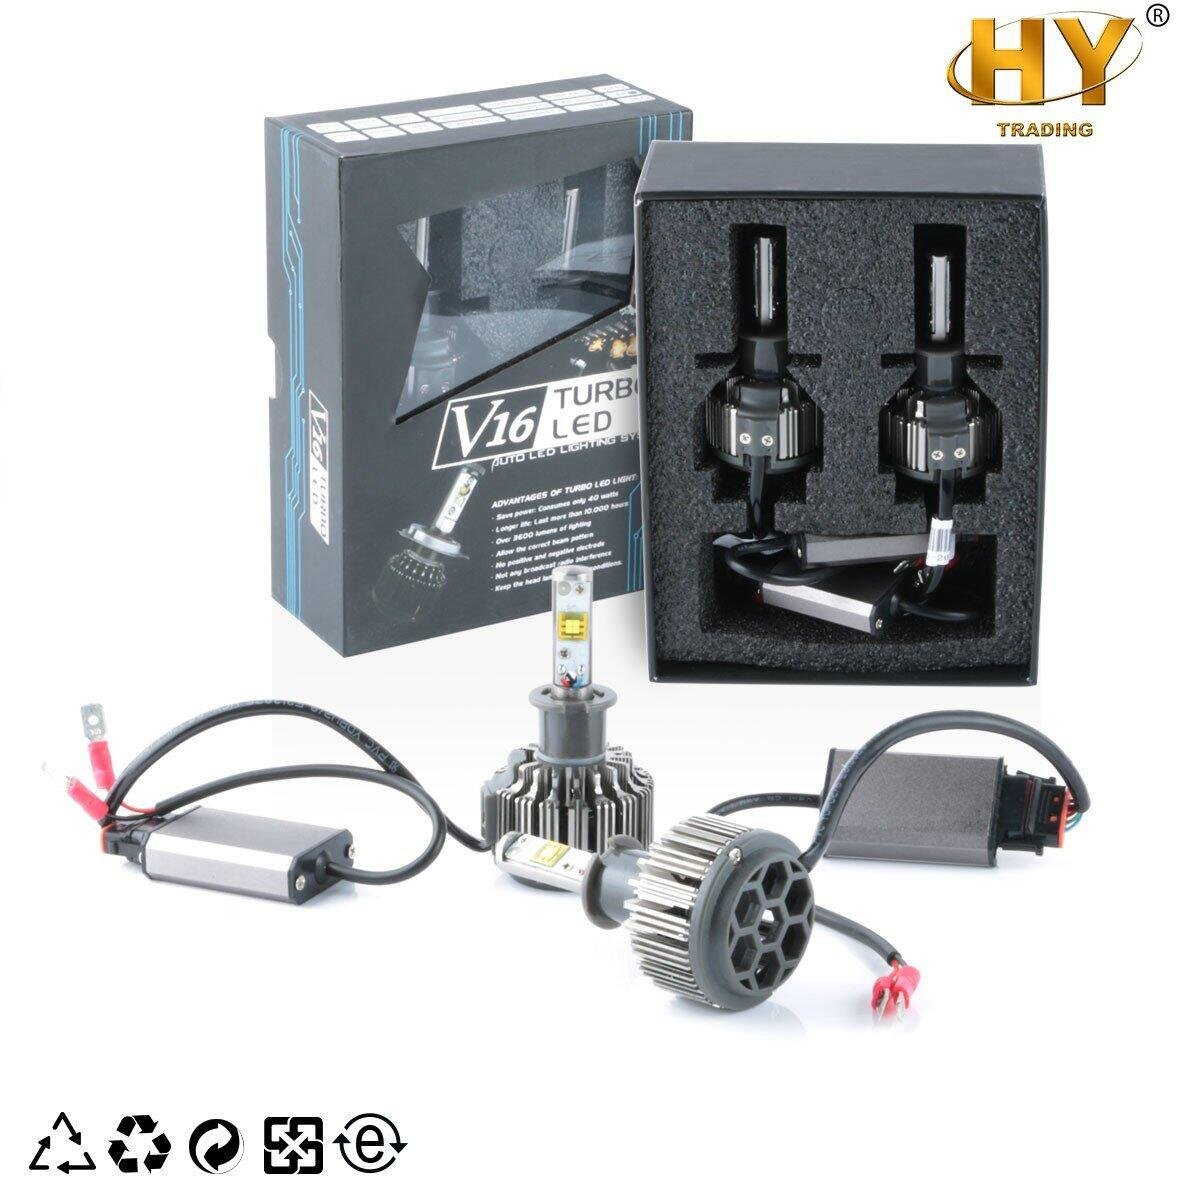 HY V16 LED Headlight Bulbs All-in-One Conversion Beam Kit, Car Lamp Replacement, 80W 9600LM Cool White 6000K 360 Degree Beam Angle, Water-proof IP68,Turbo Fan, H7,H1,H3 (H3)